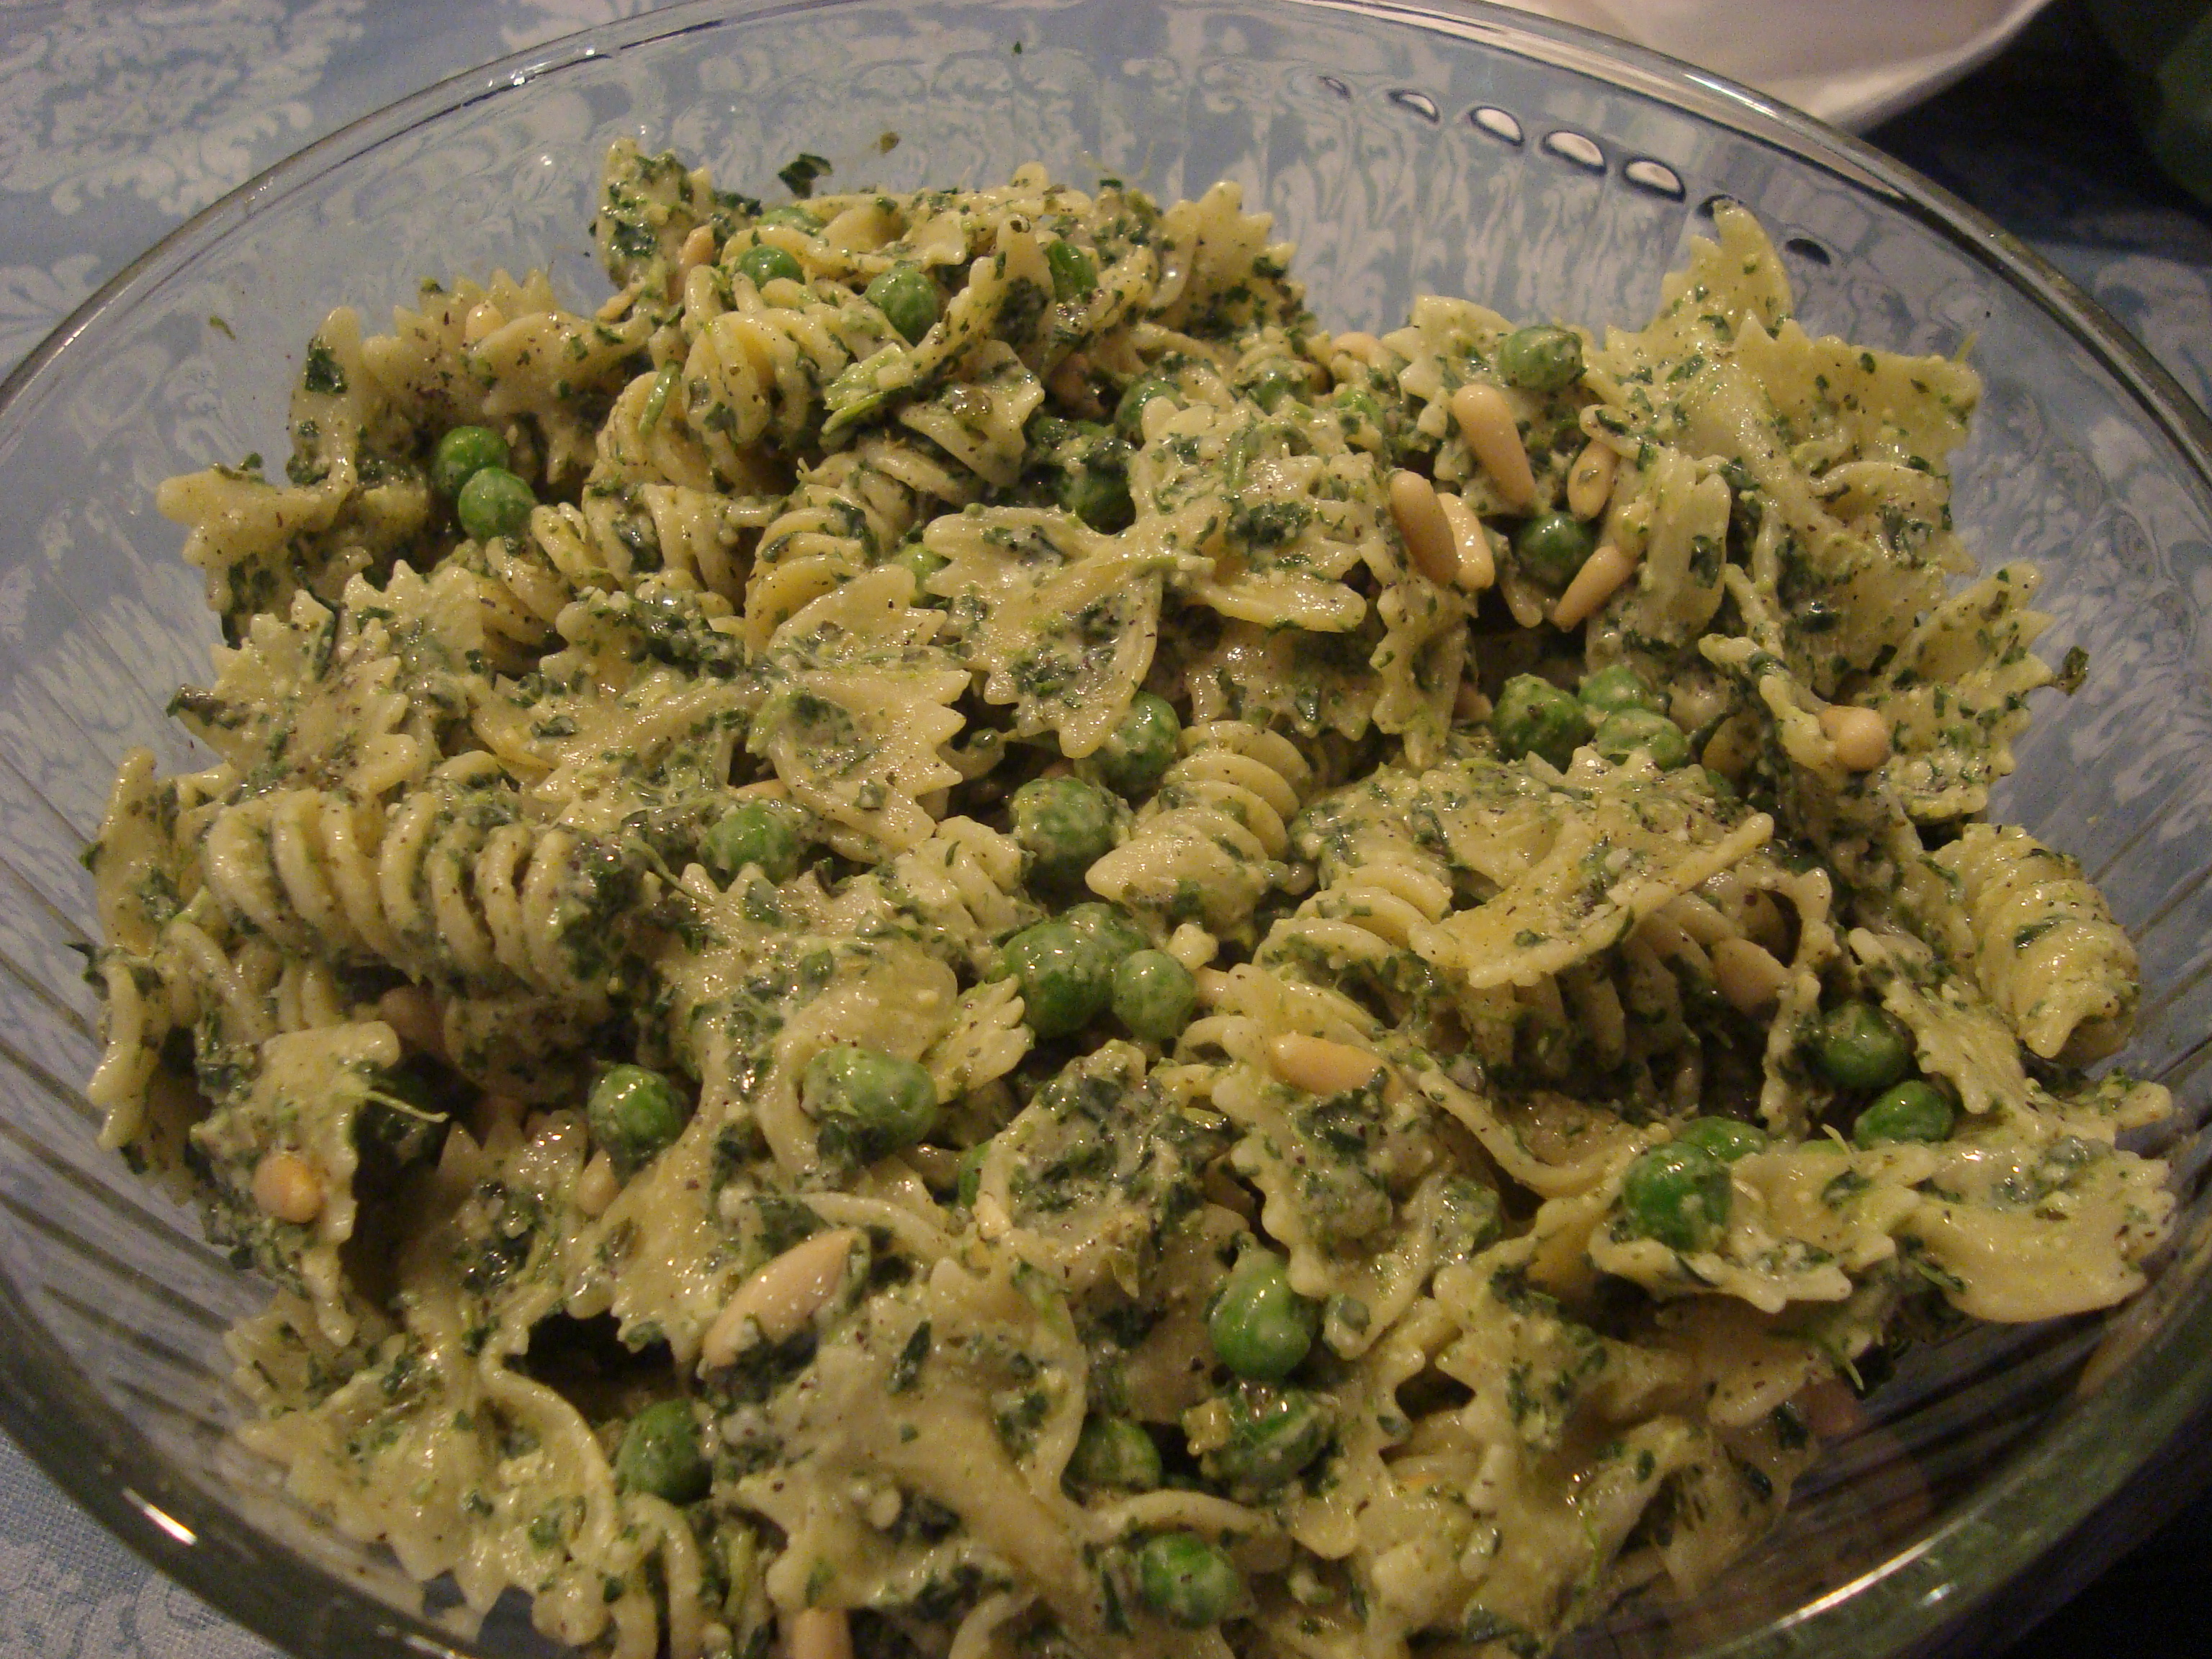 ... pasta with peas smoked almonds and dill pasta salad recipe pasta pesto